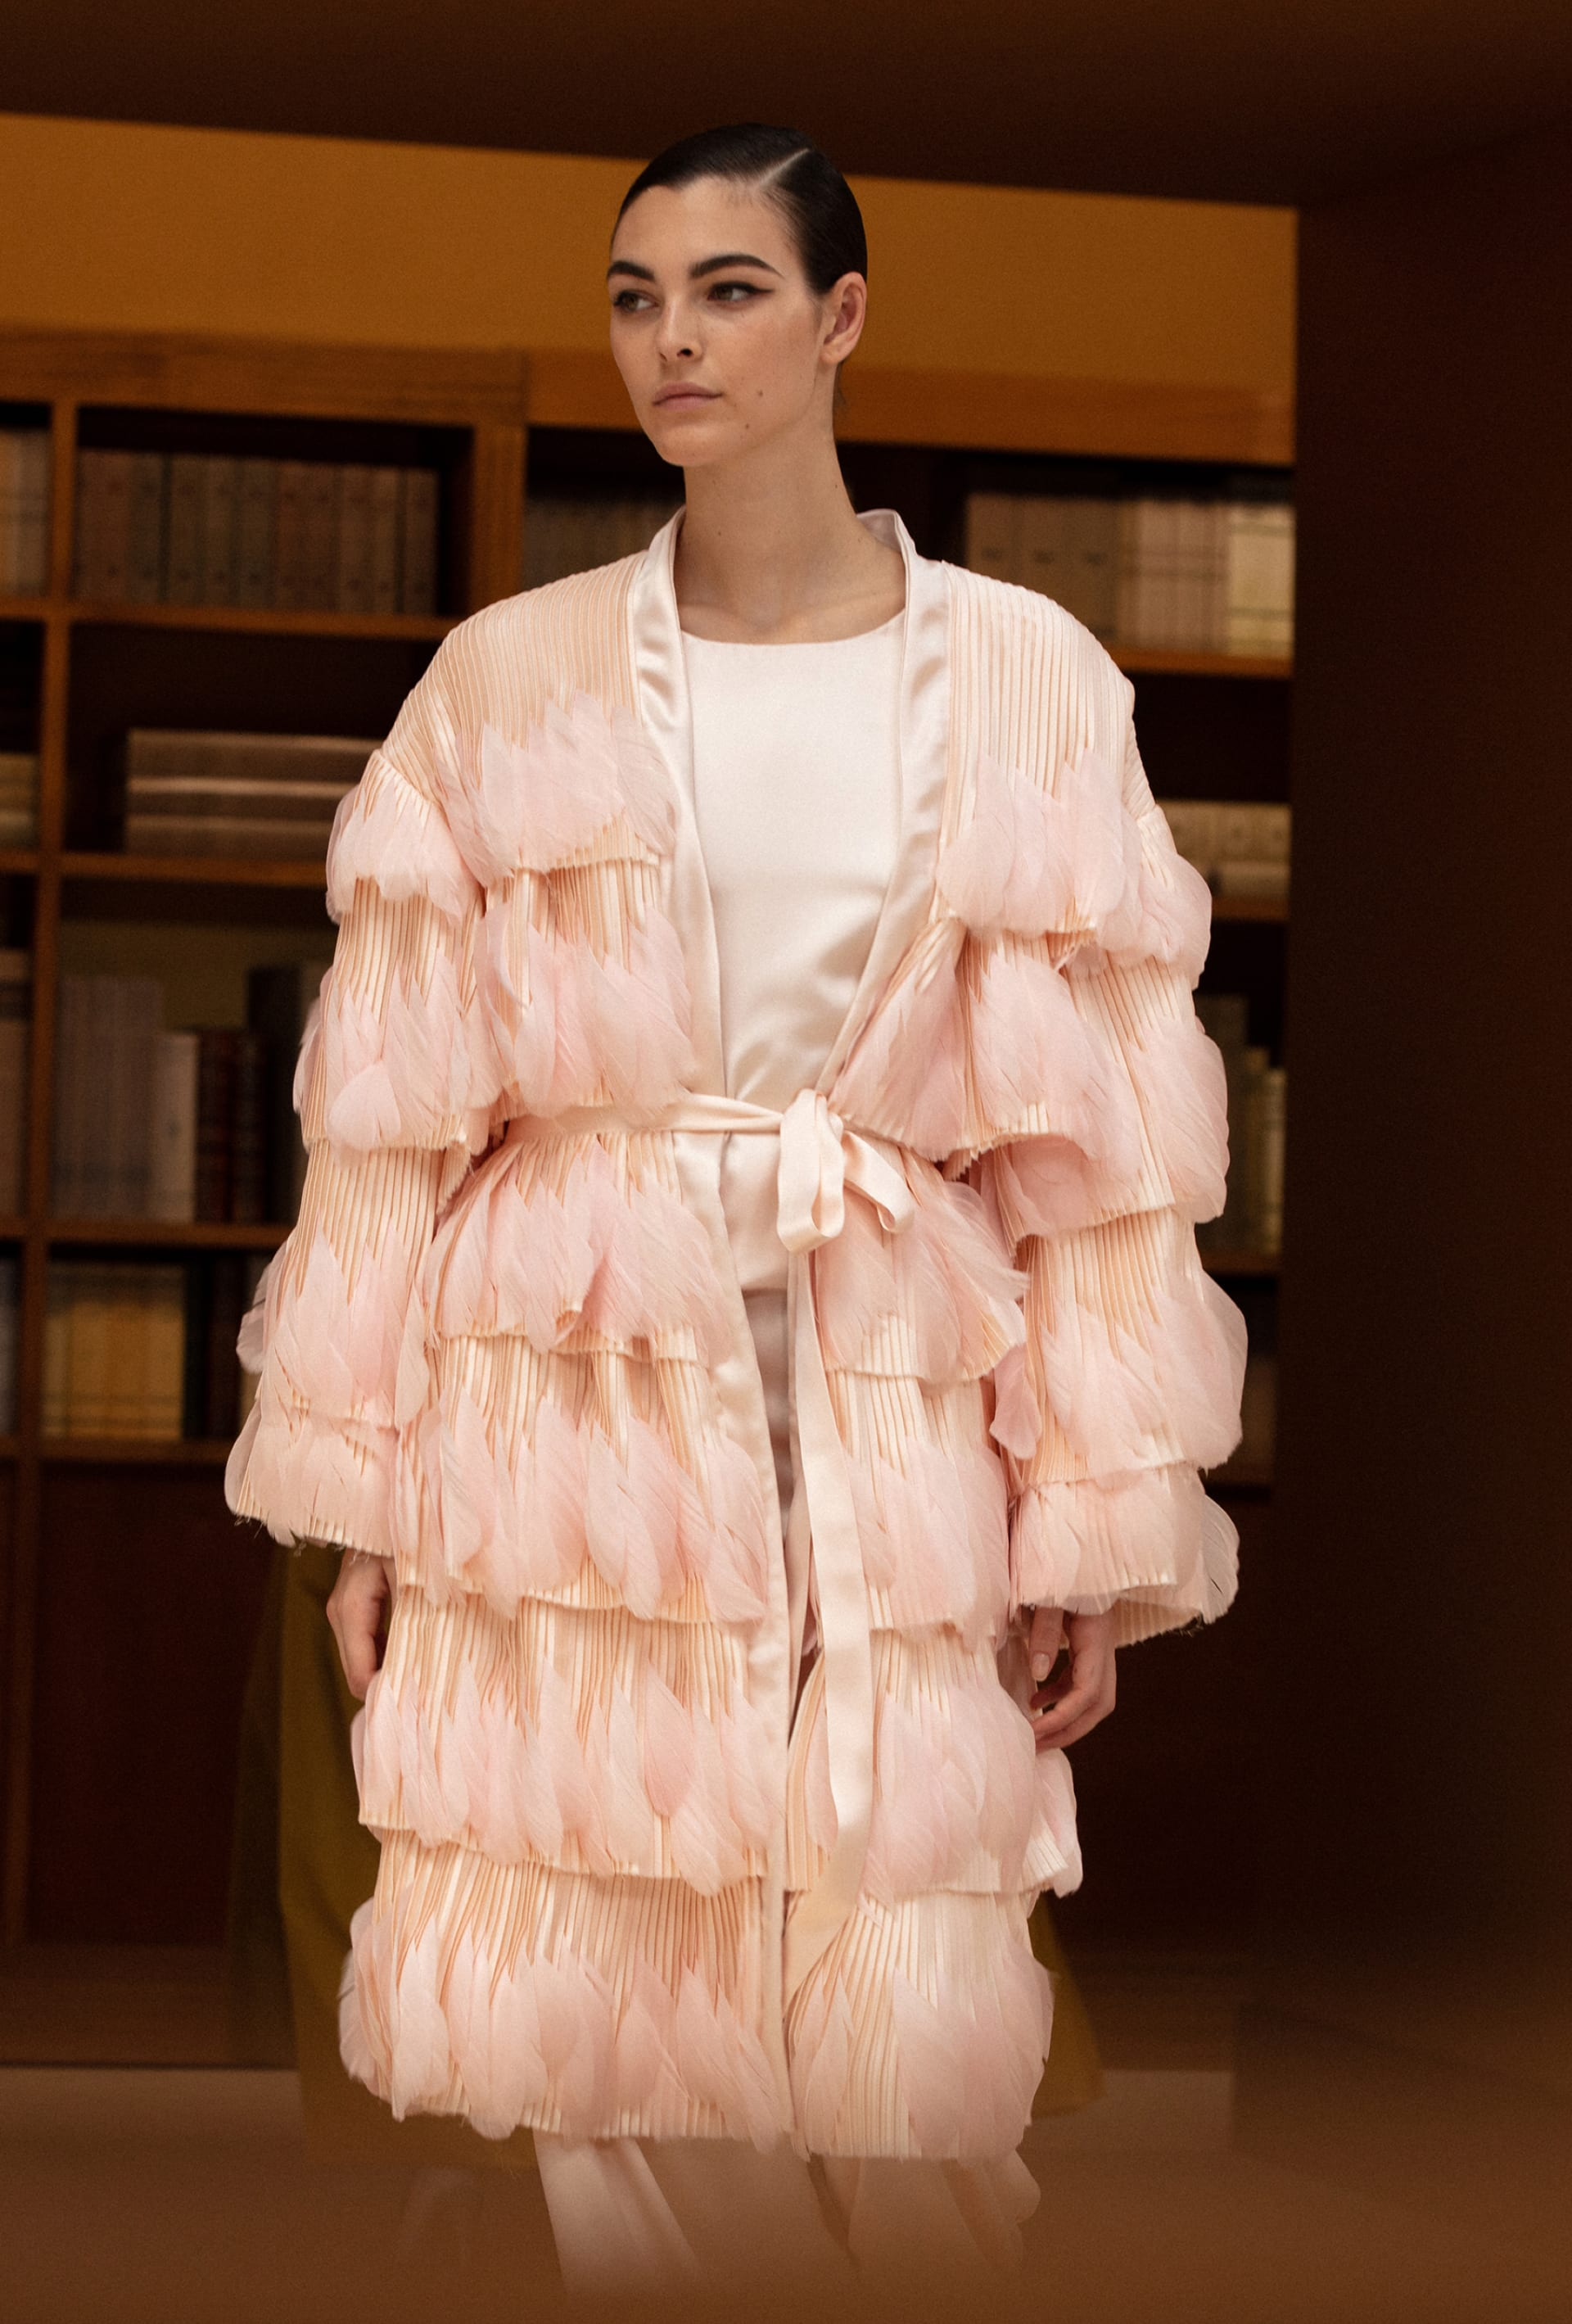 View 3 - Look 70 - Fall-Winter 2019/20 Haute-Couture - see full sized version